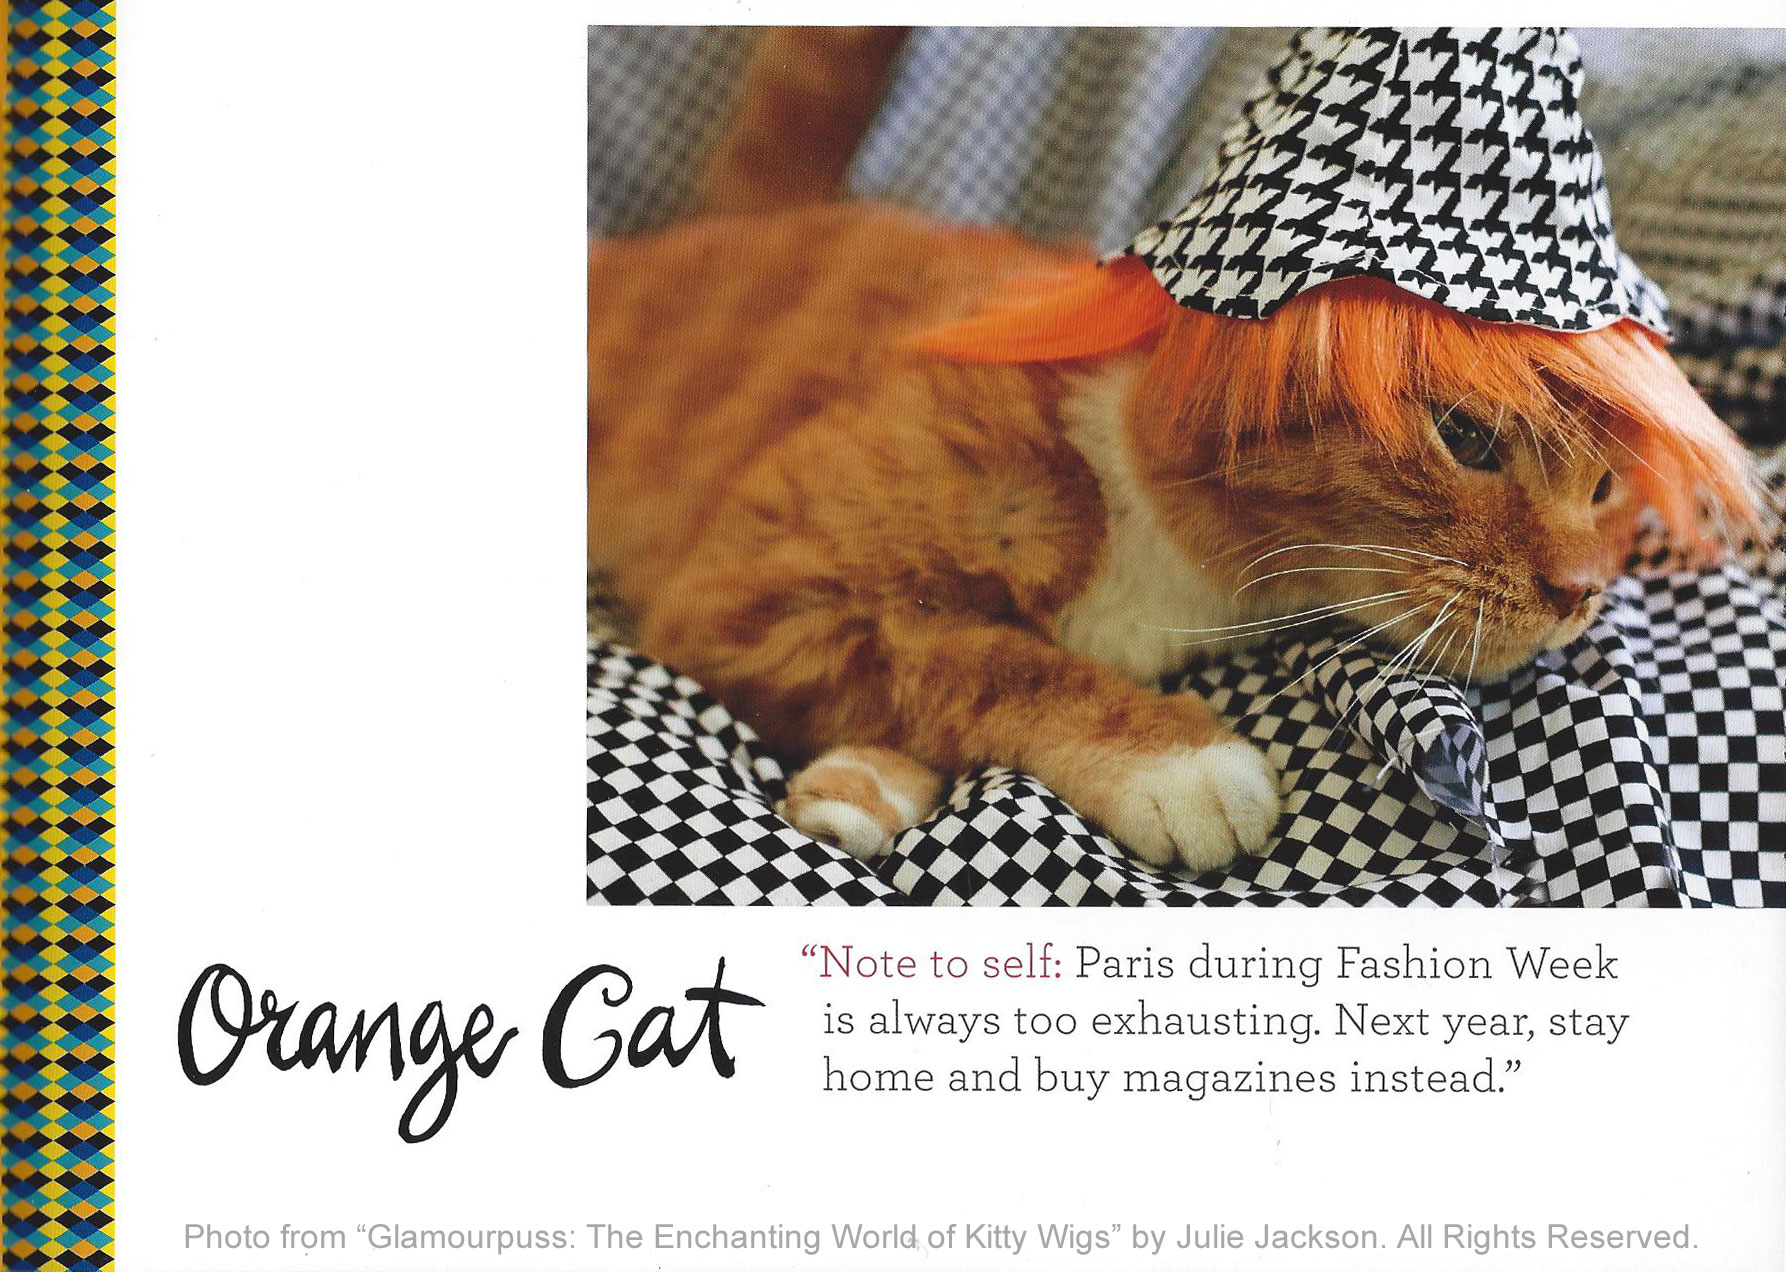 From The Book: Orange Cat